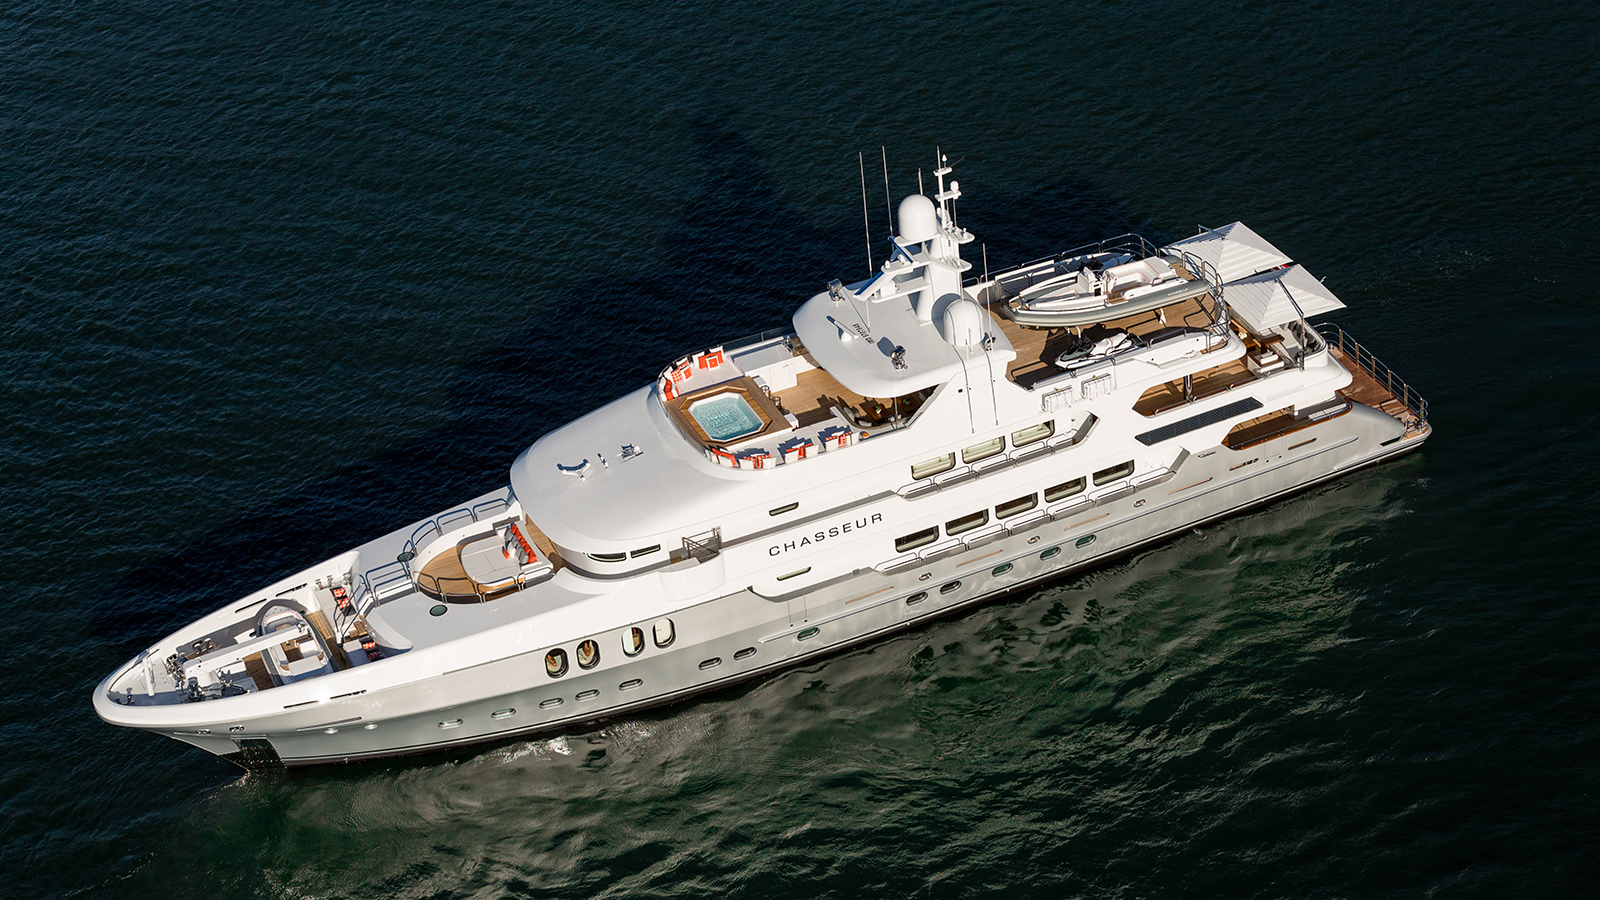 aerial-view-of-the-christensen-super-yacht-chasseur